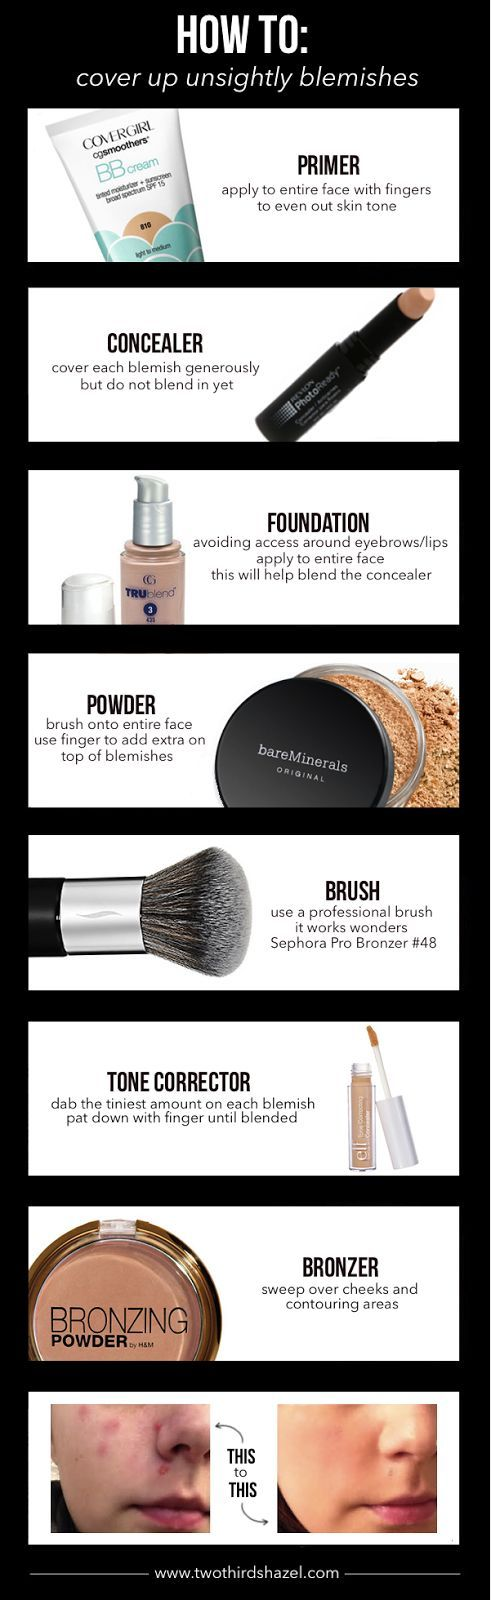 http://makeupit.com/Zykrd | Don't let sensitive skin stop you from applying makeup!